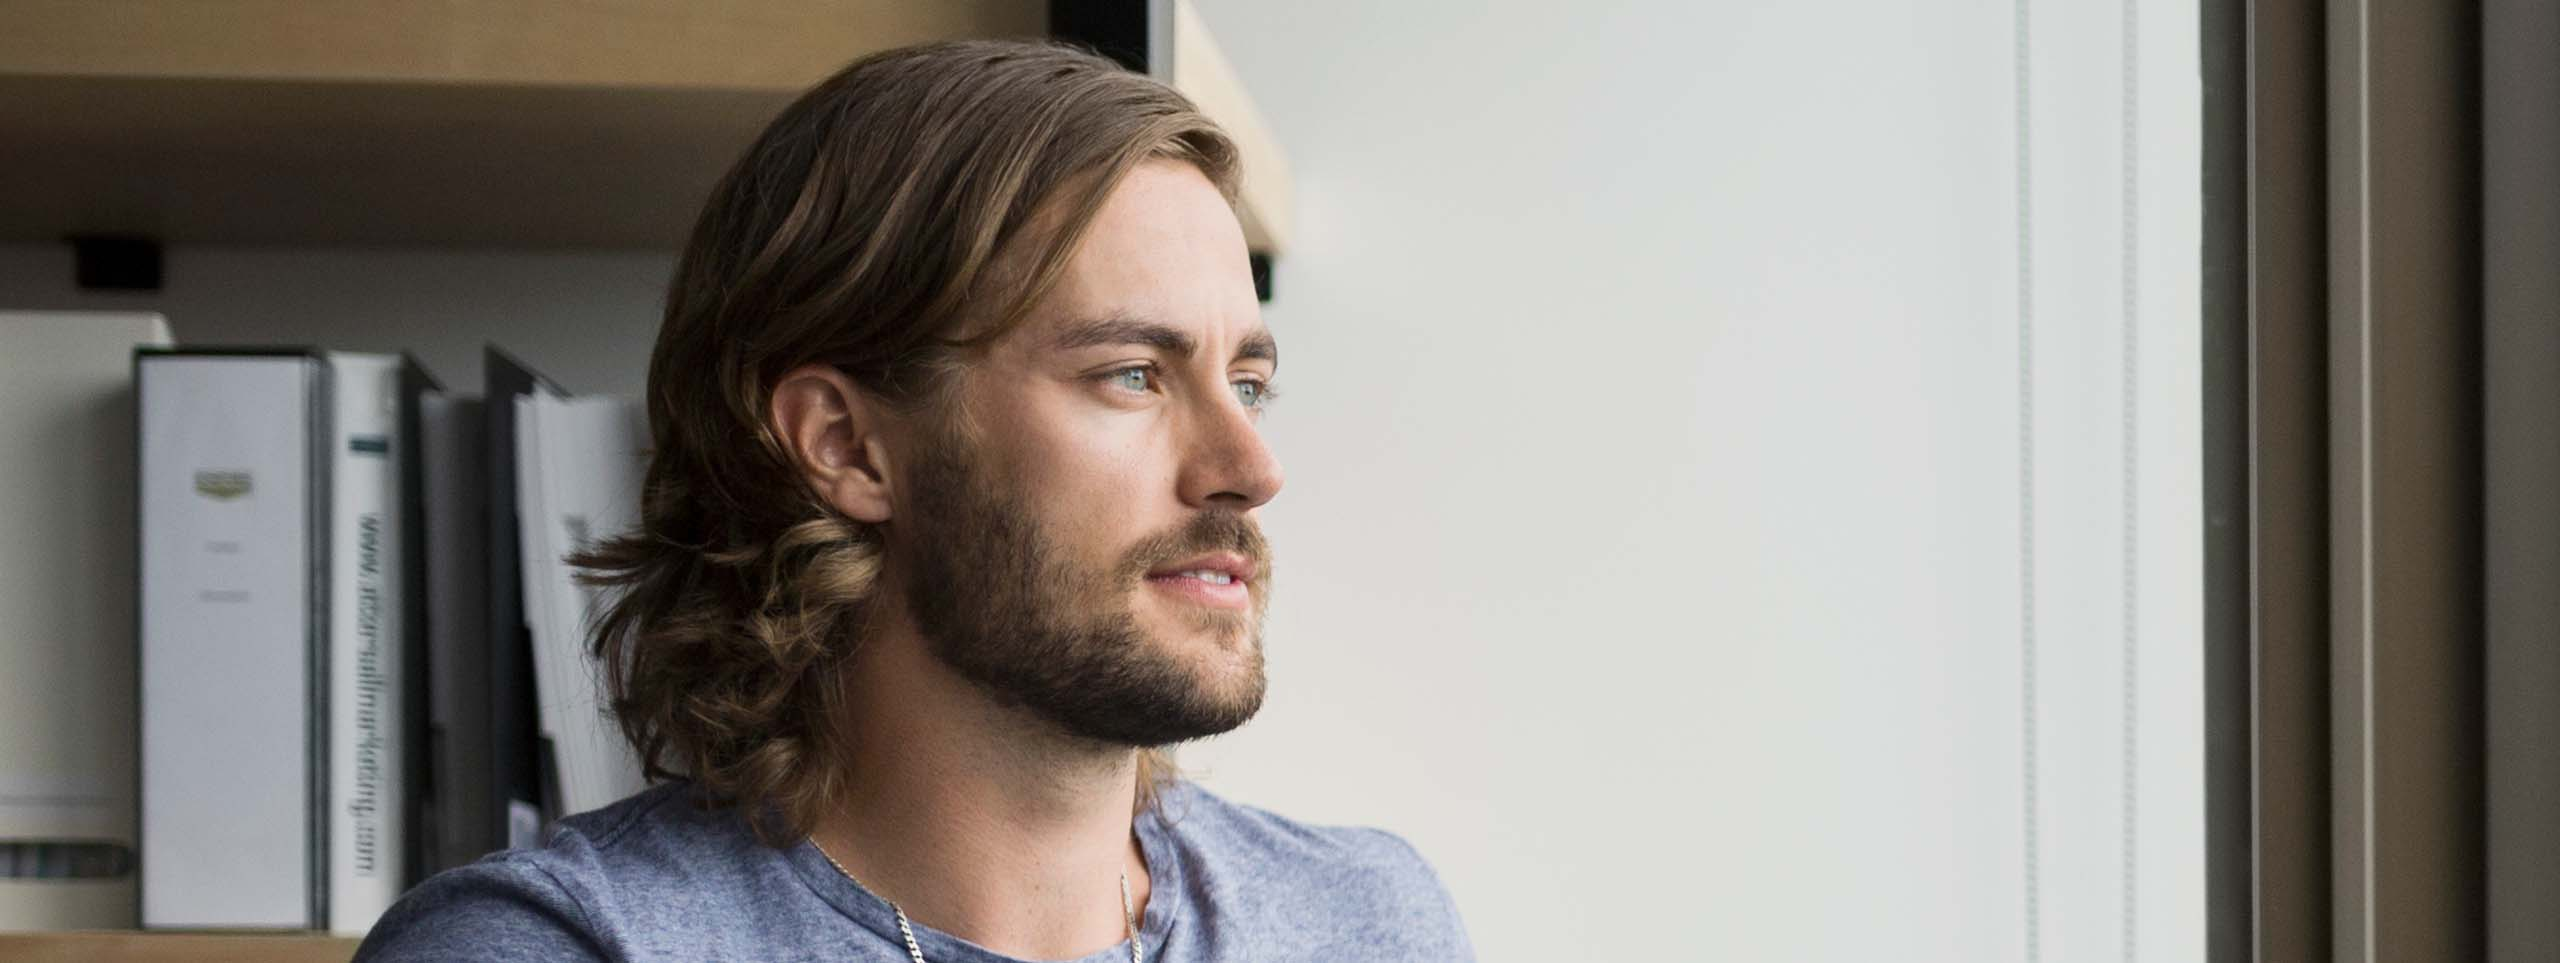 2560x963_man-with-shoulder-length-hair-and-beard